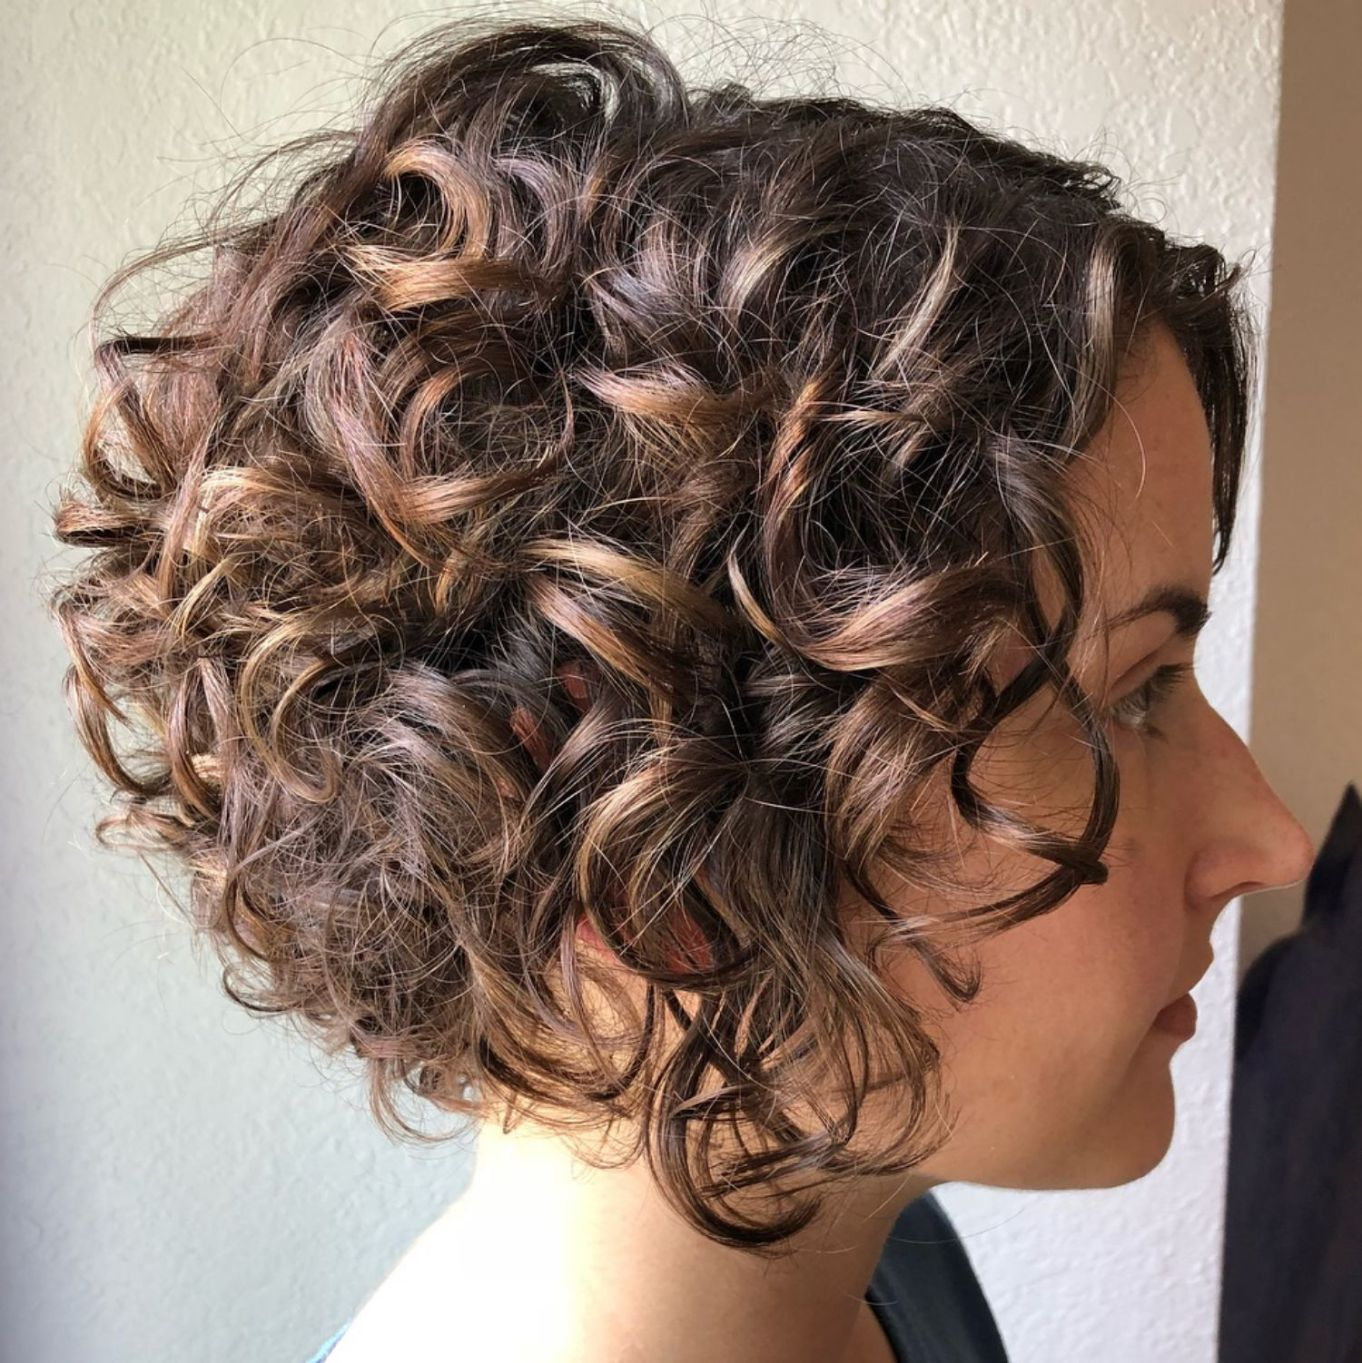 60 Most Delightful Short Wavy Hairstyles Short Wavy Hair Curly Hair Photos Short Curly Haircuts